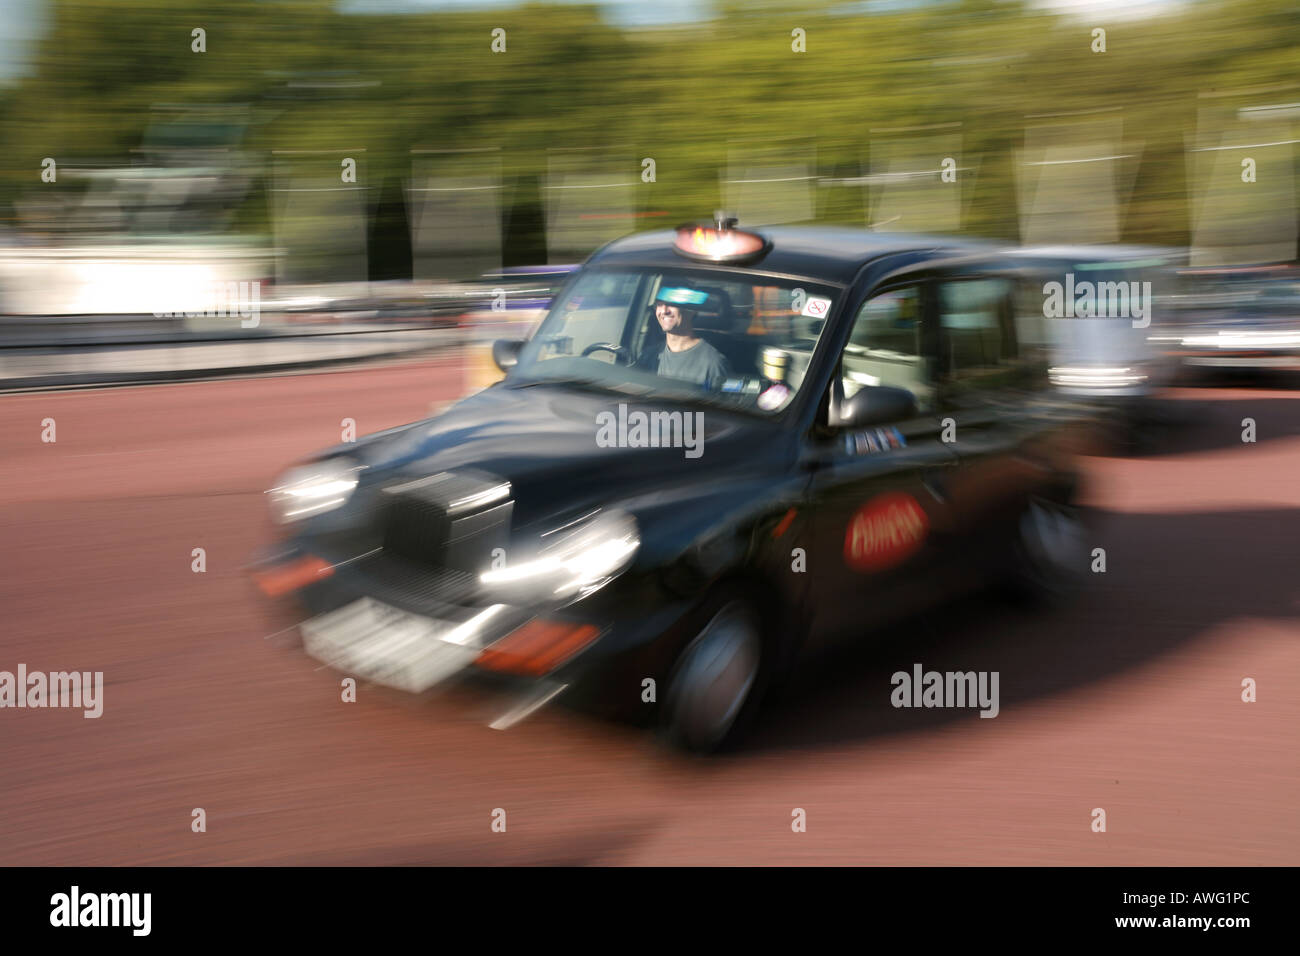 Typical London black taxi cab licensed hackney carriage public transport iconic evocative image England London Britain UK - Stock Image